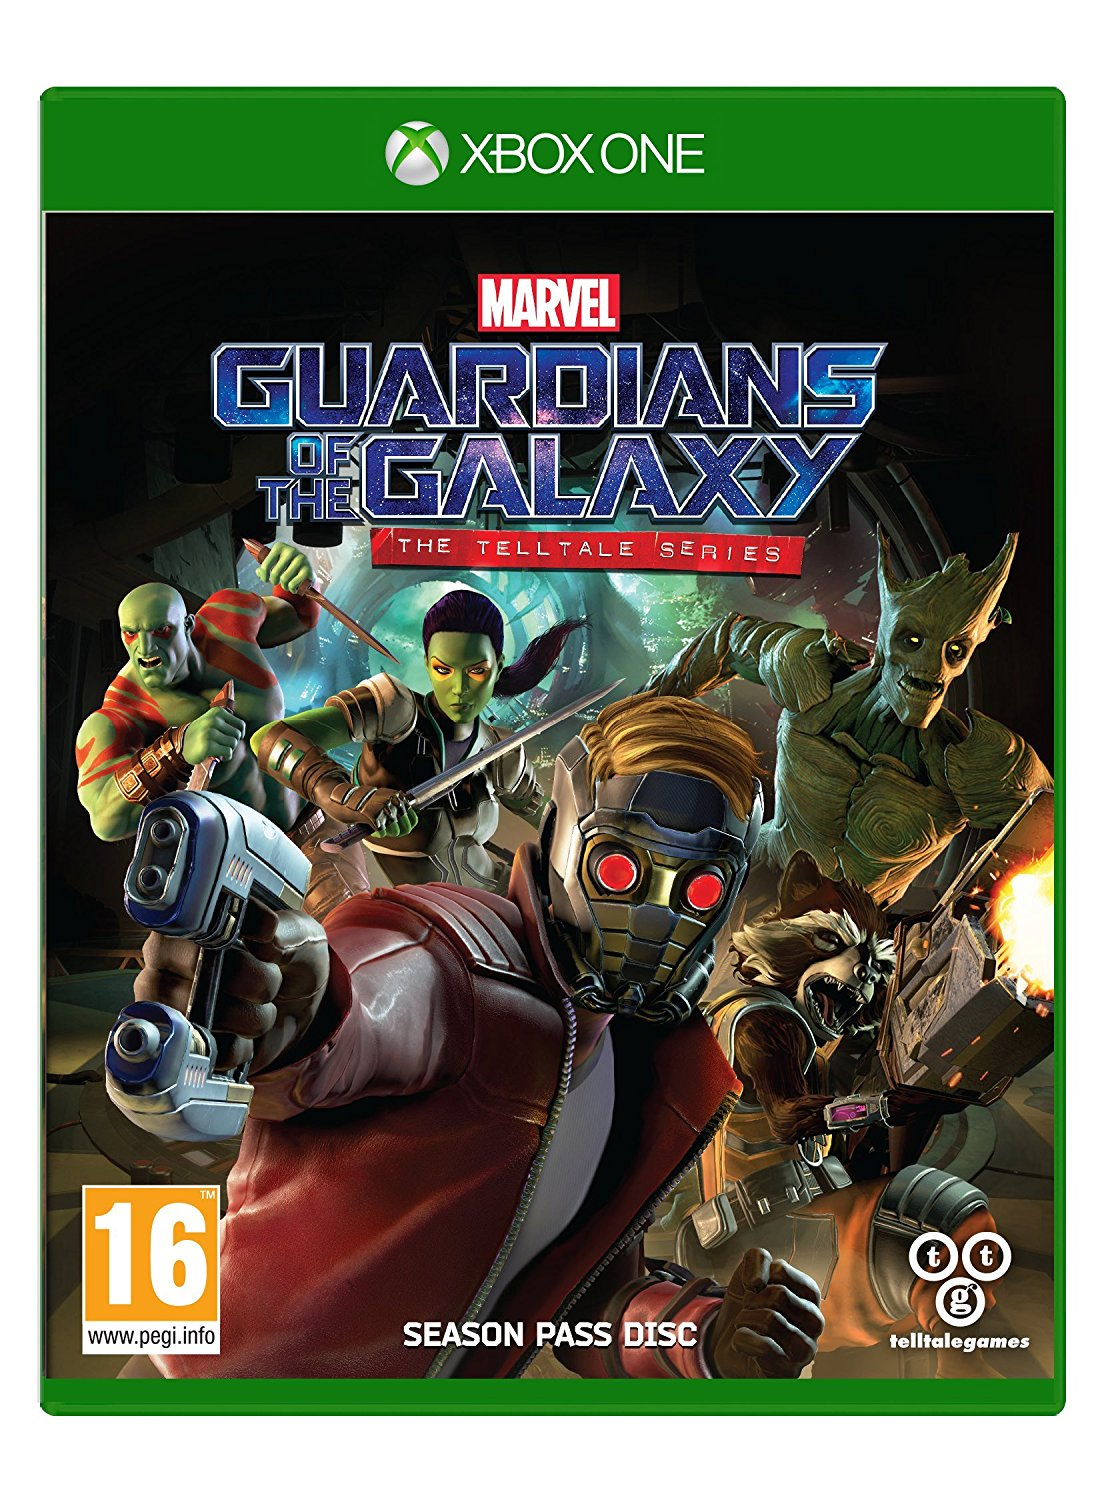 Guardians of the Galaxy The Telltale Series XBOX ONE, XBOX ONE, DVDMEGASTORE, DVDMEGASTORE